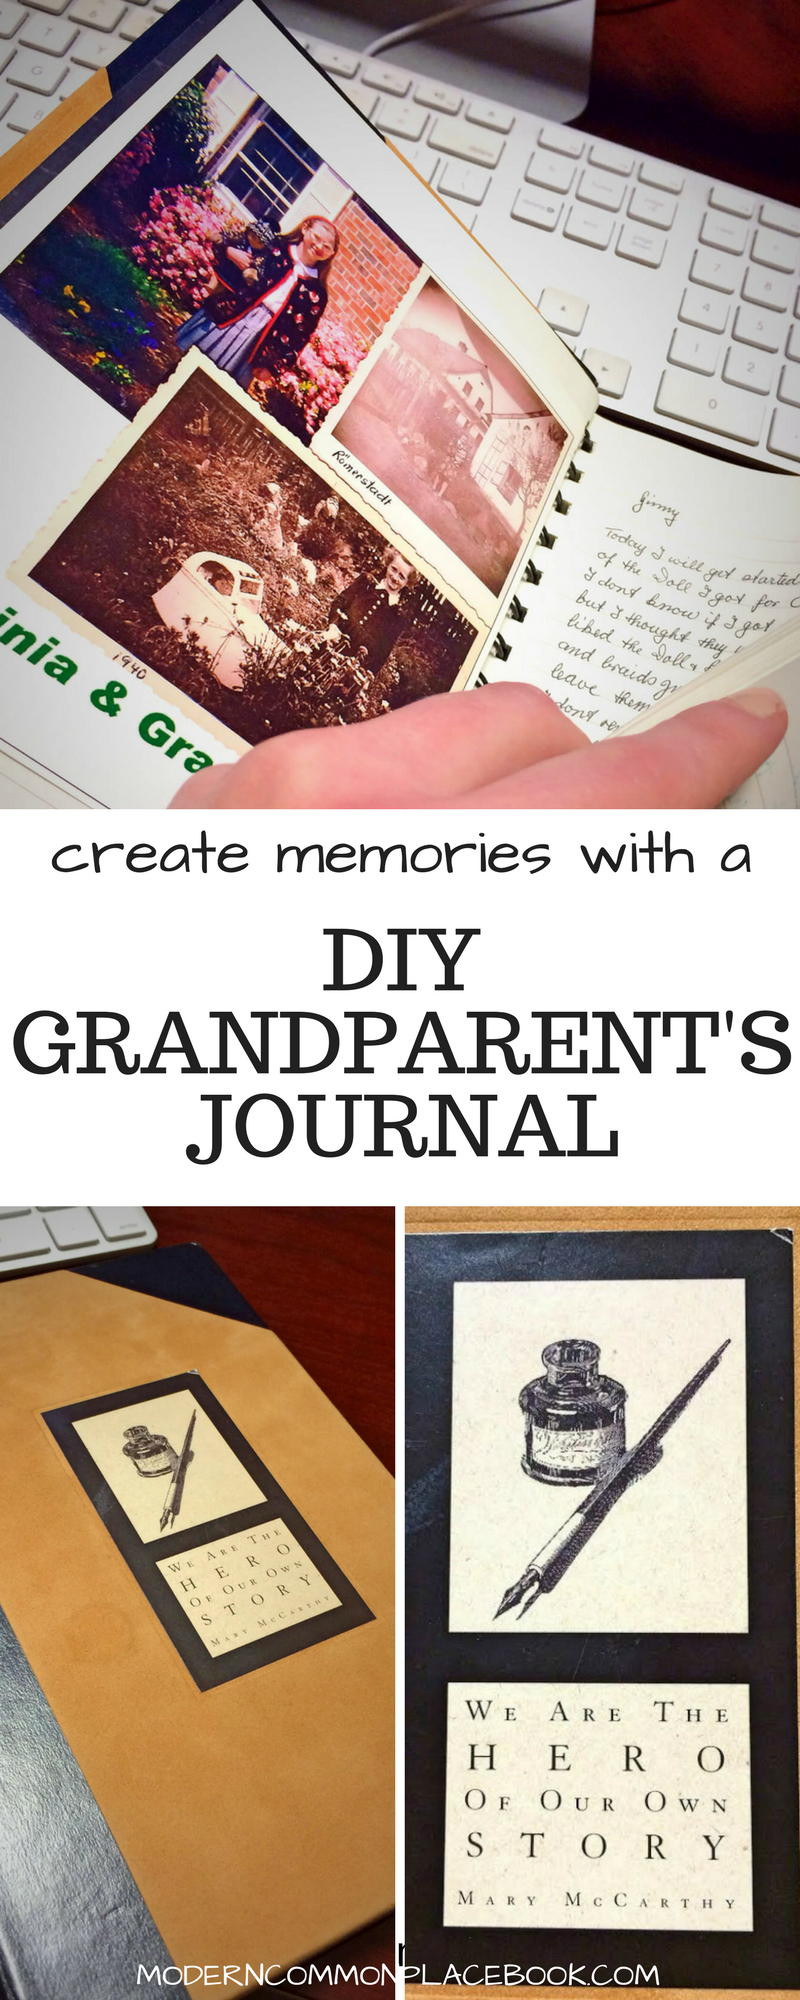 create memories with a diy grandparents journal gift ideas grandparent gift ideas grandmother gift ideas grandfather gifts christmas gift ideas for - Christmas Gift Ideas For Grandparents